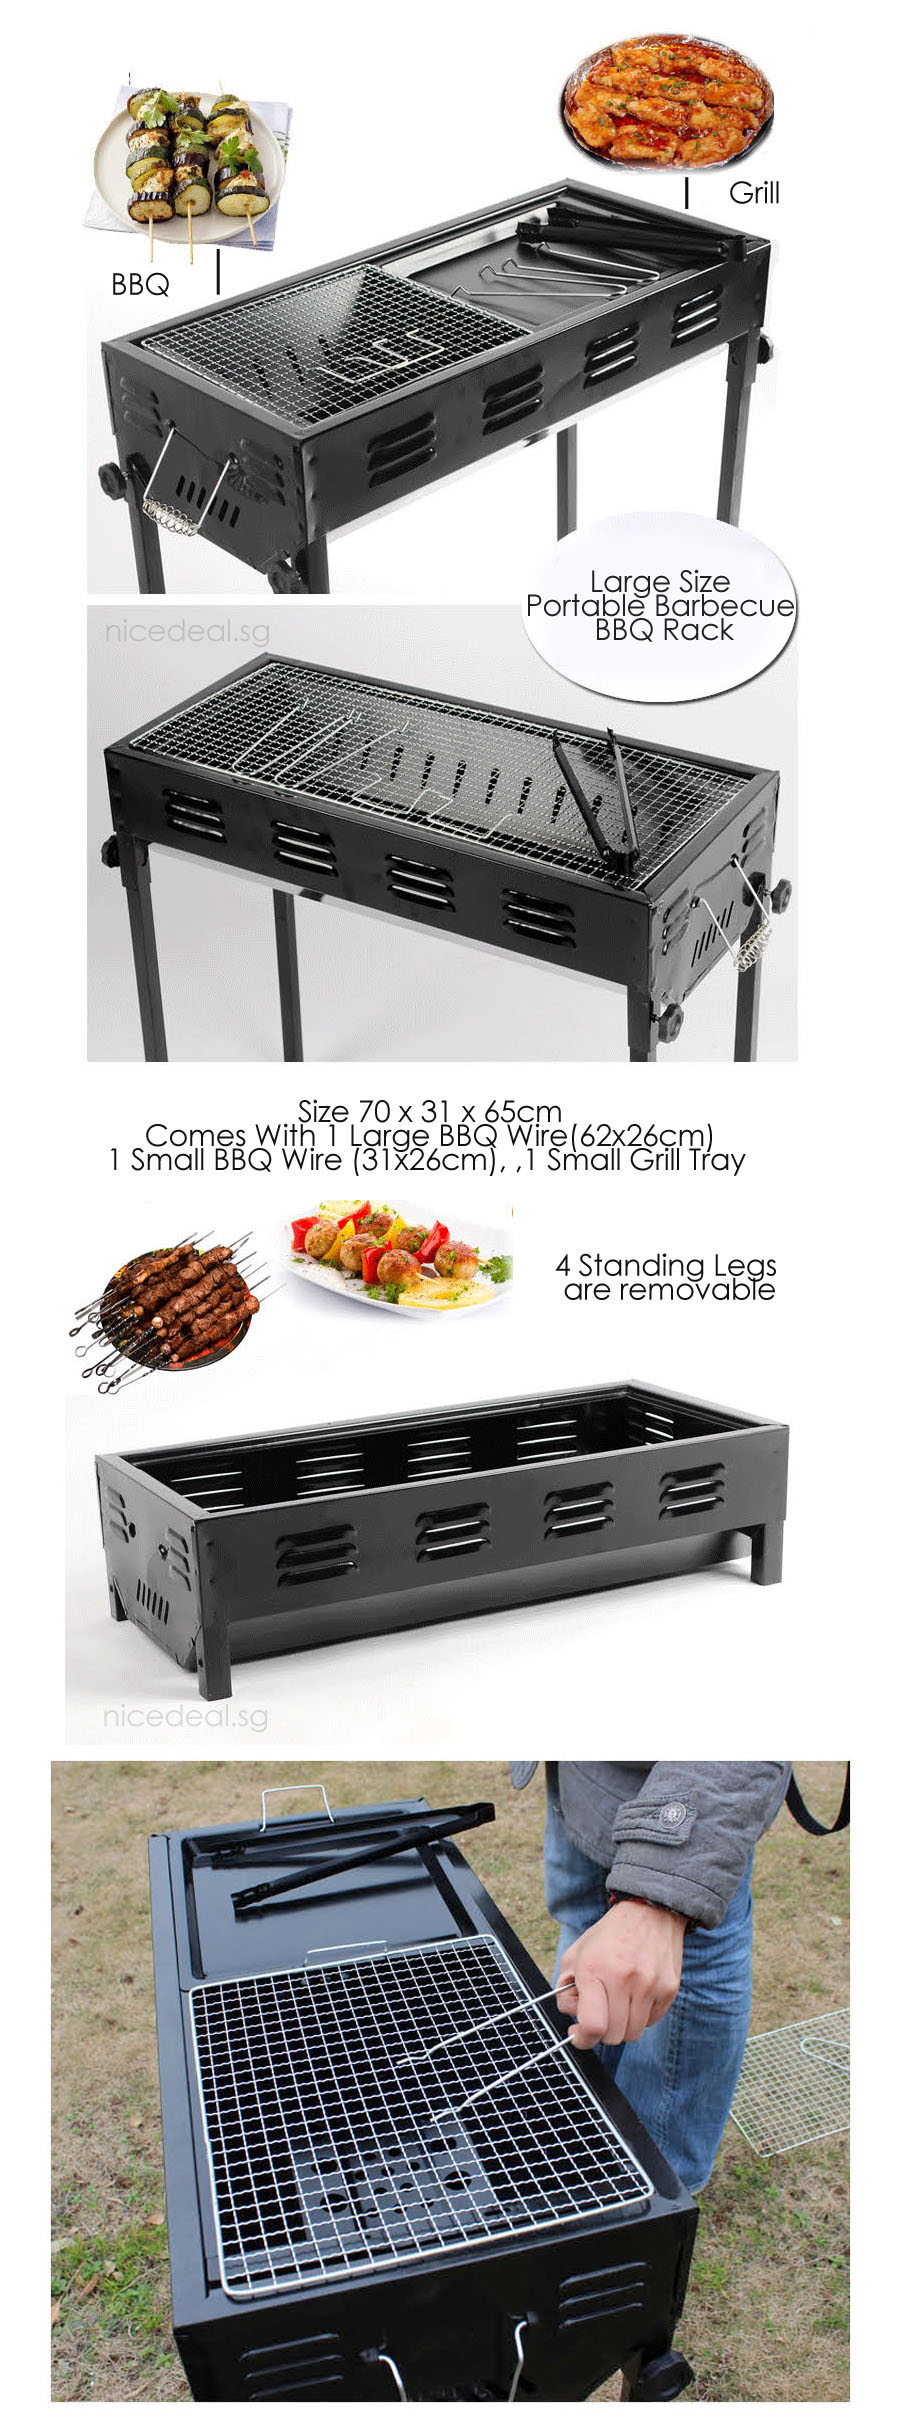 buy portable bbq grill rack large size portable barbecue. Black Bedroom Furniture Sets. Home Design Ideas